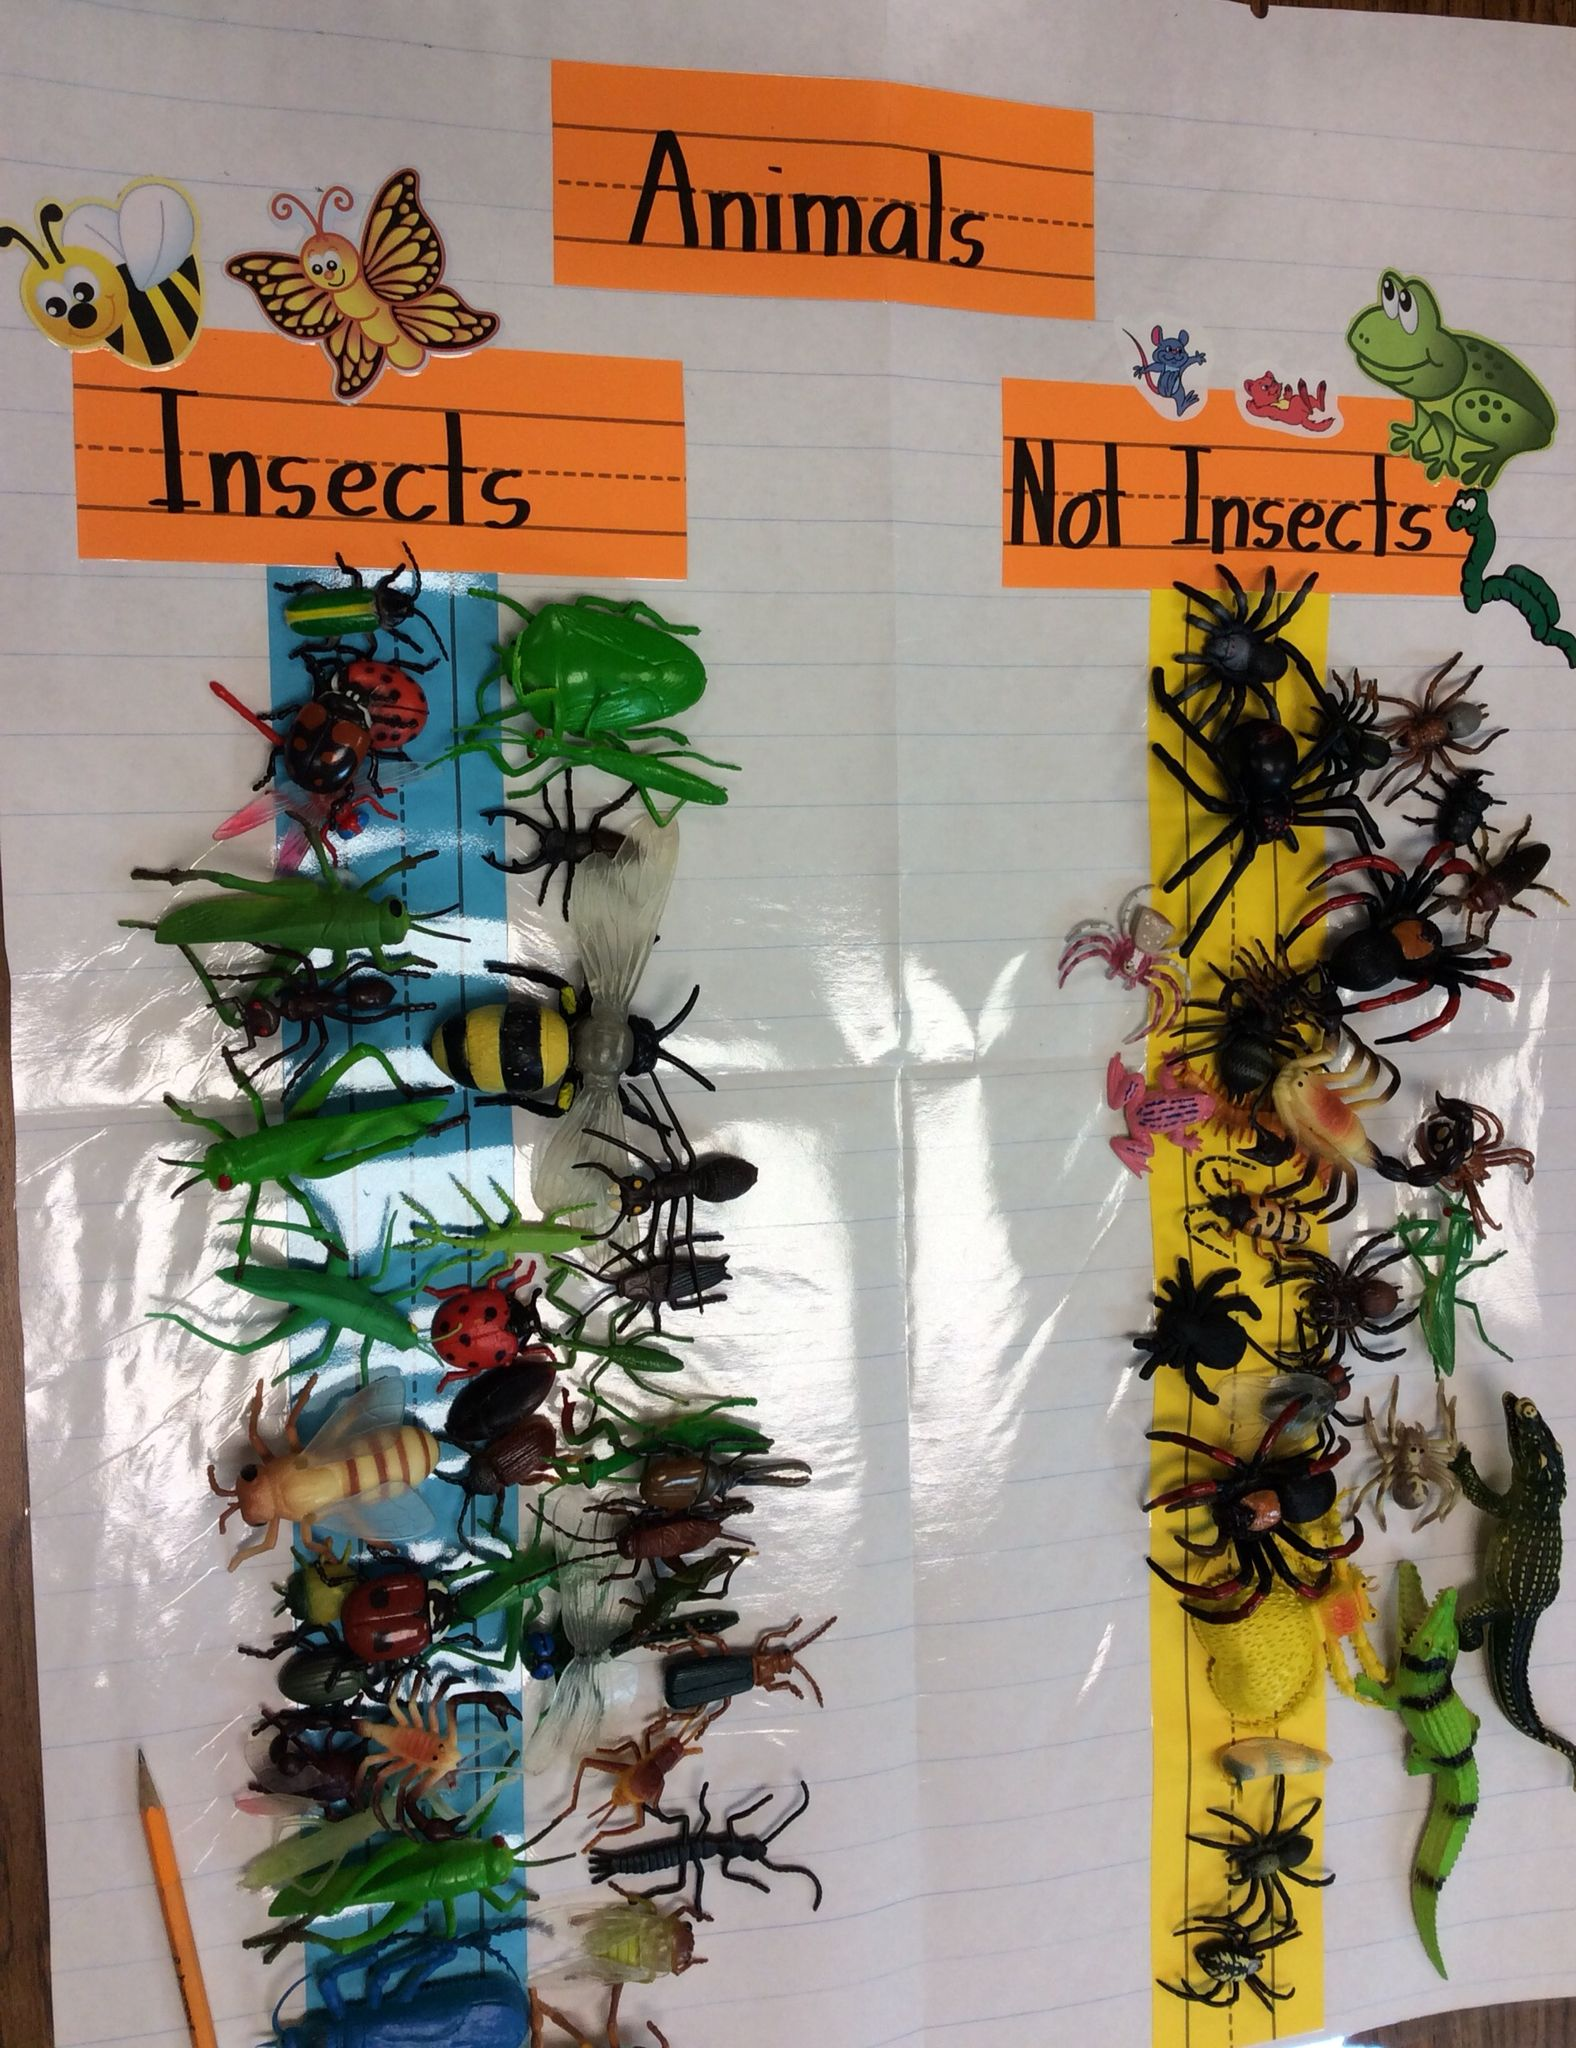 Insects And Not Insects